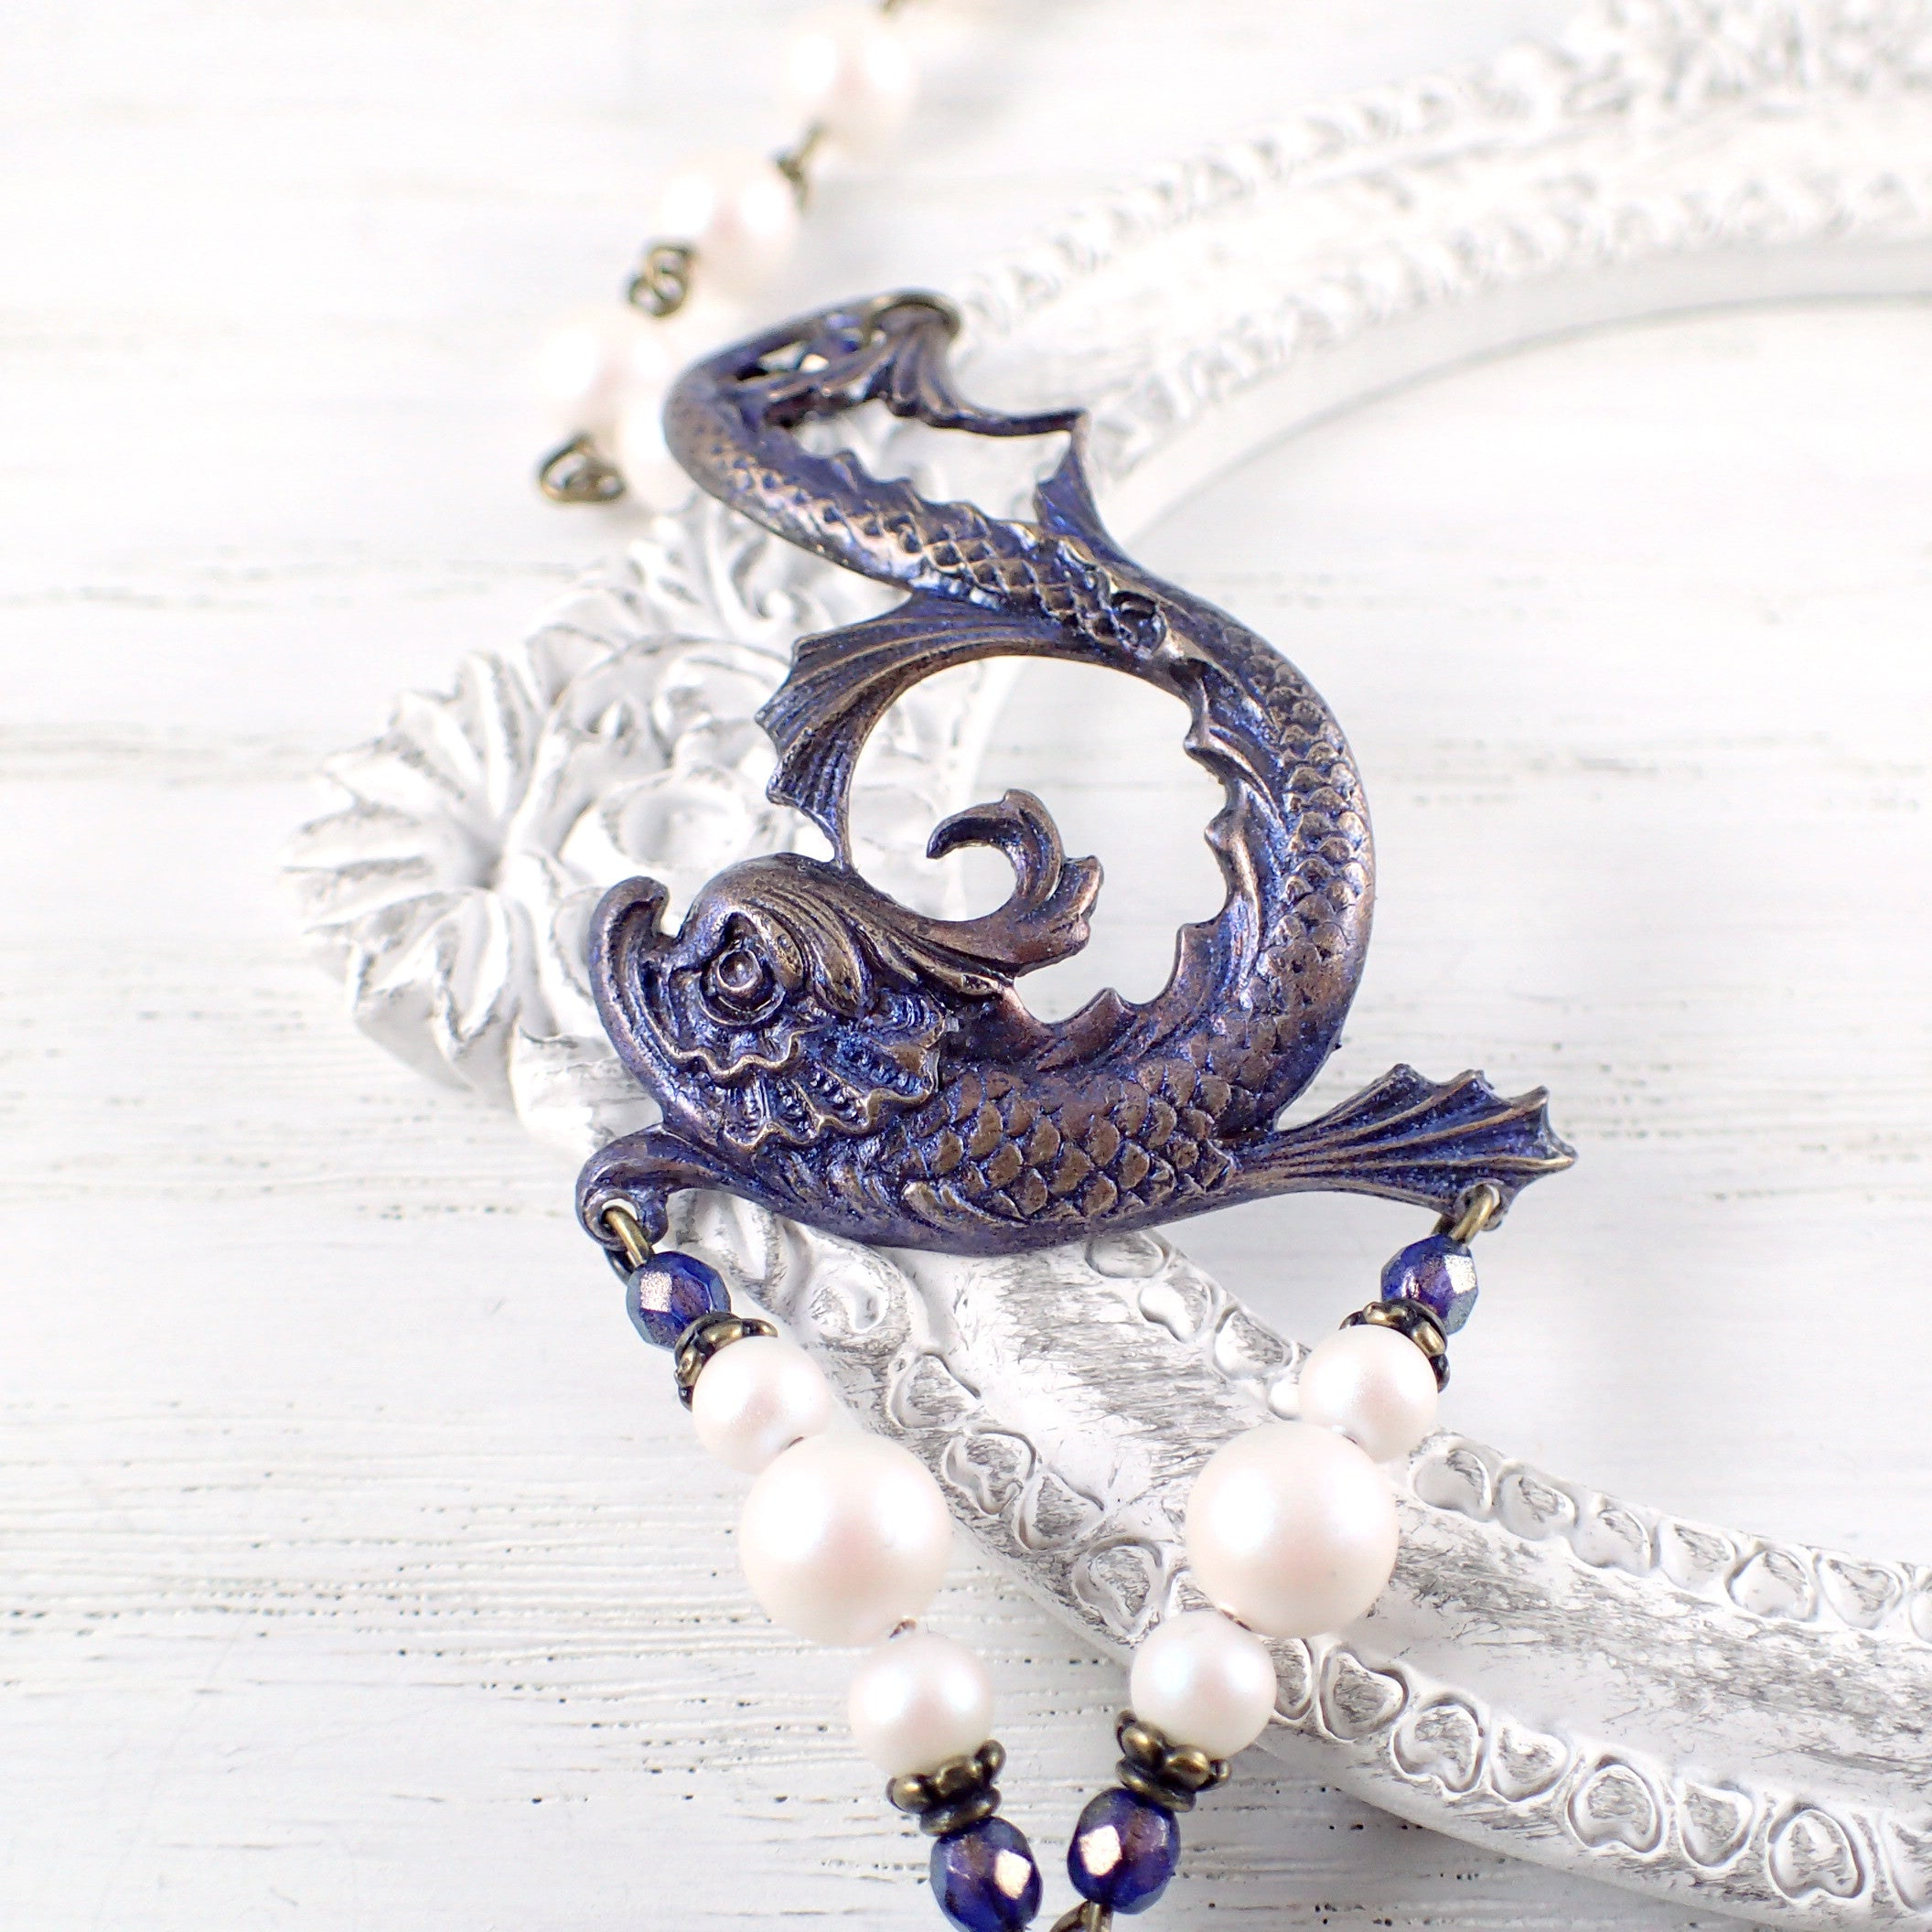 Mythical Sea Creature Bracelet with Swarovski Pearls